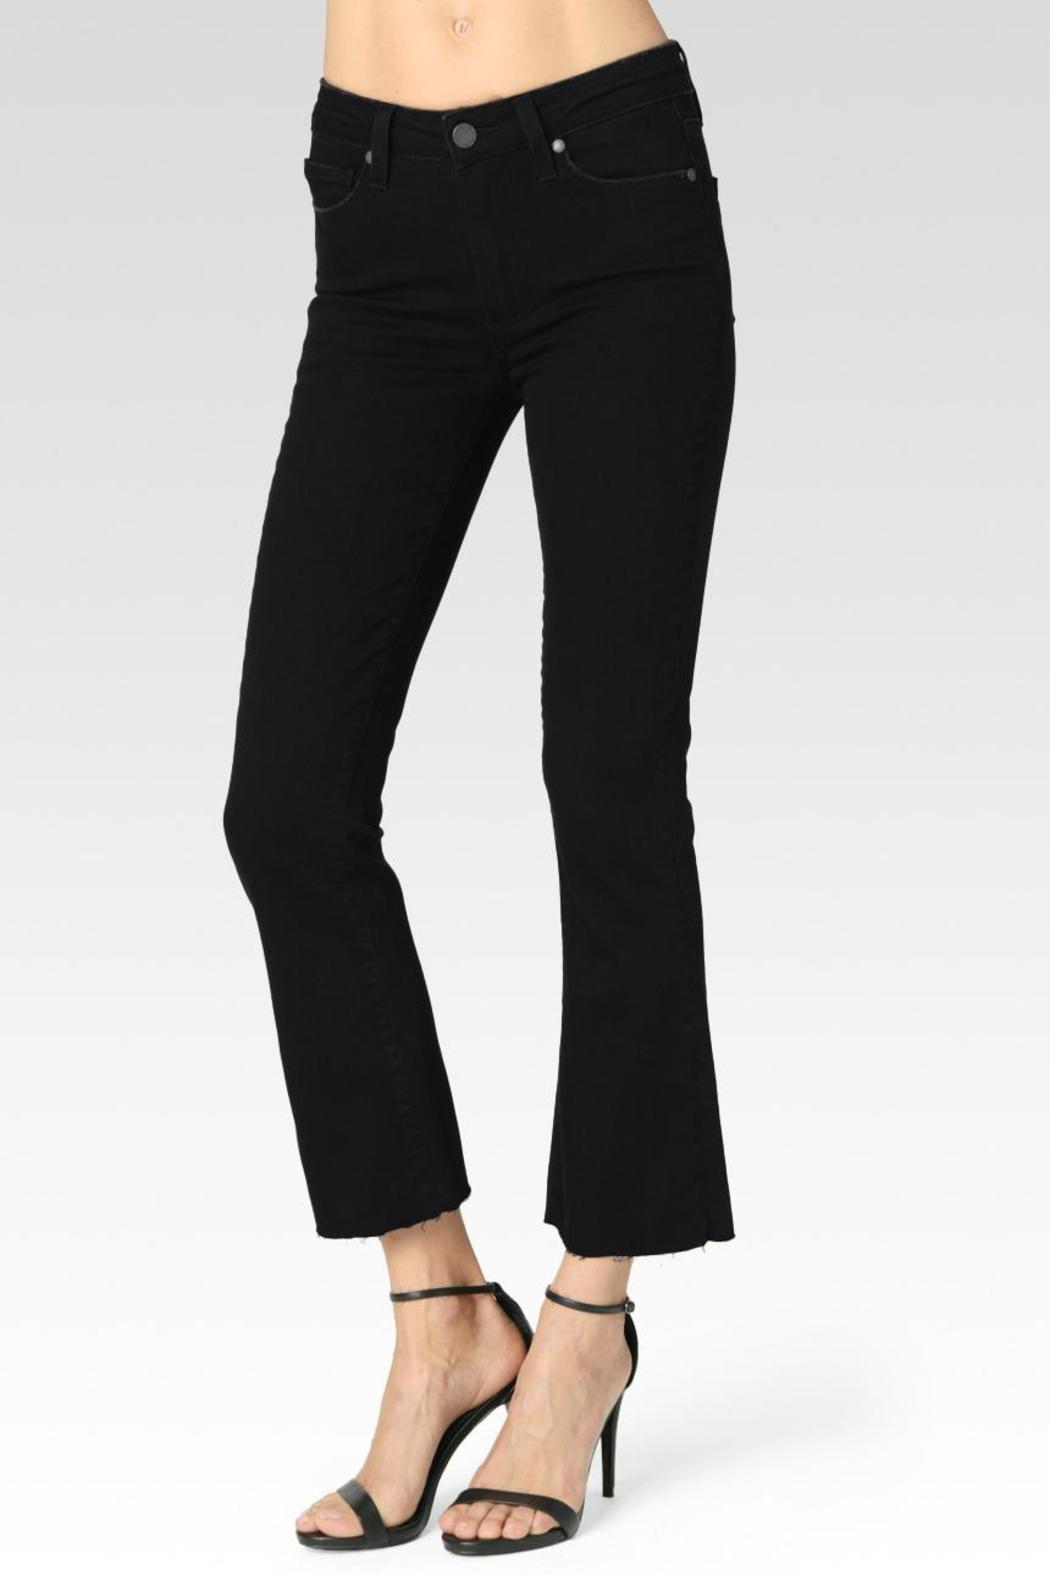 Paige Colette Cropped Flare Jeans from Hudson Valley by Bfree ...